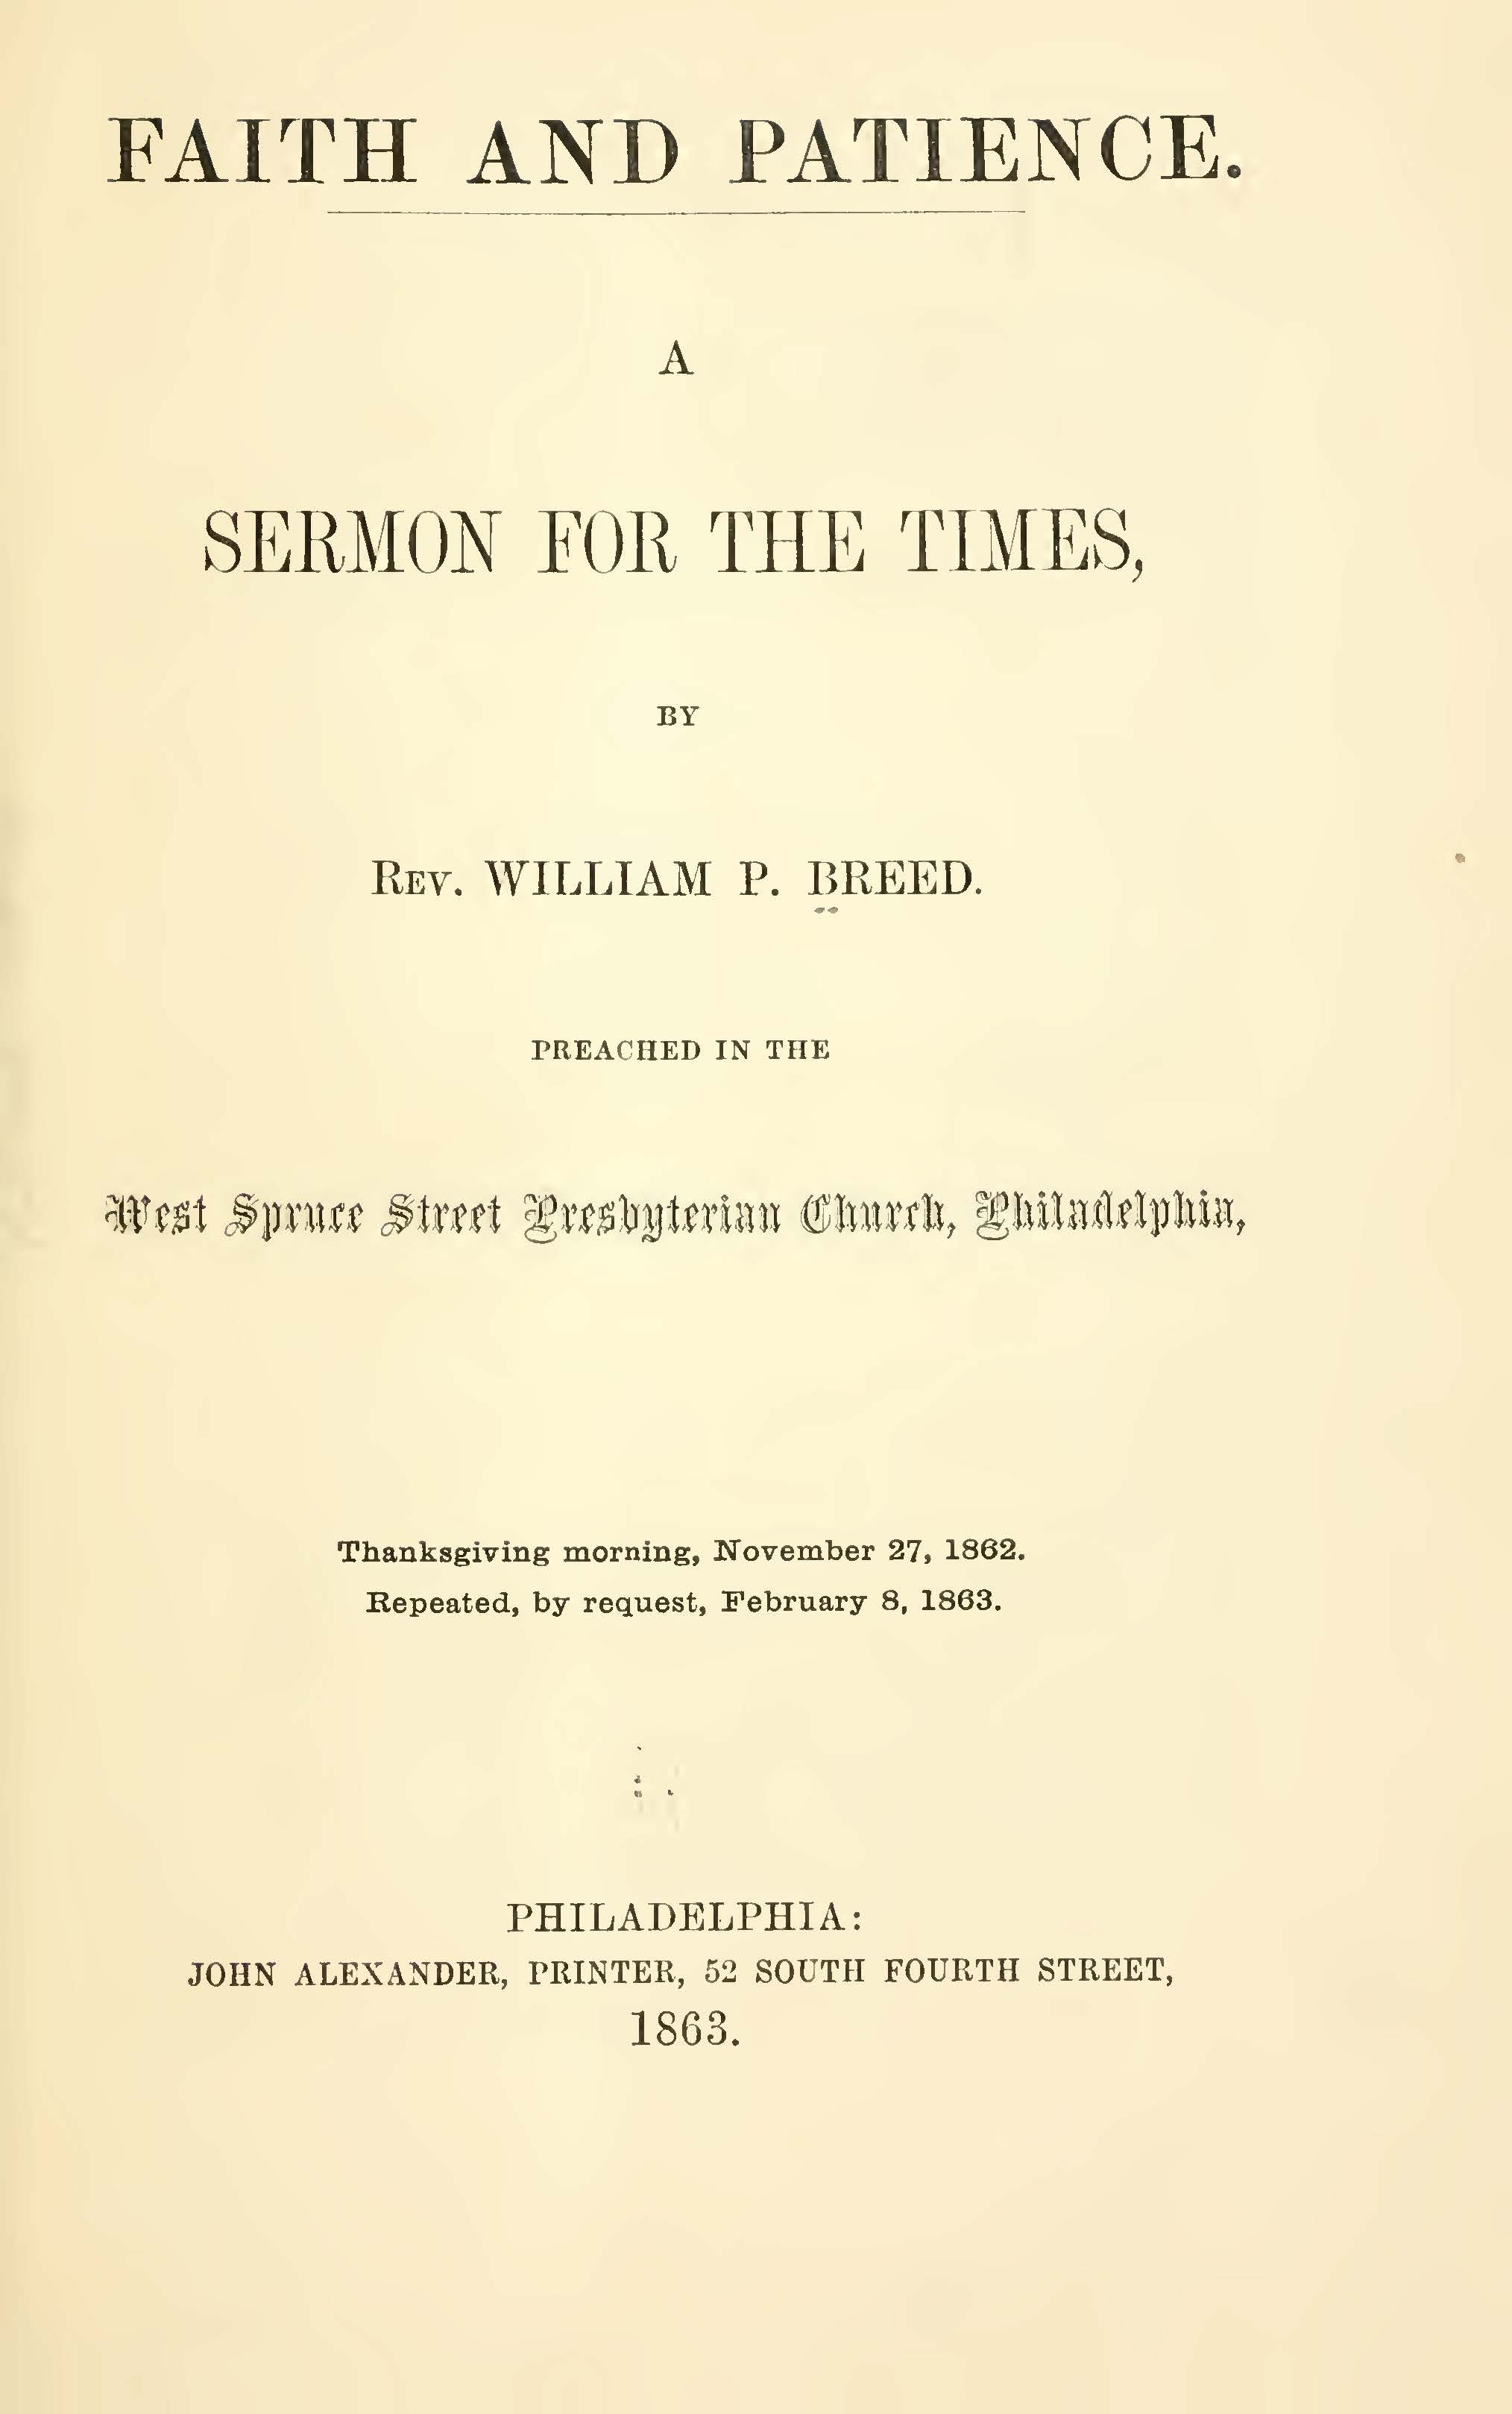 Breed, William Pratt, Faith and Patience A Sermon for the Times Title Page.jpg